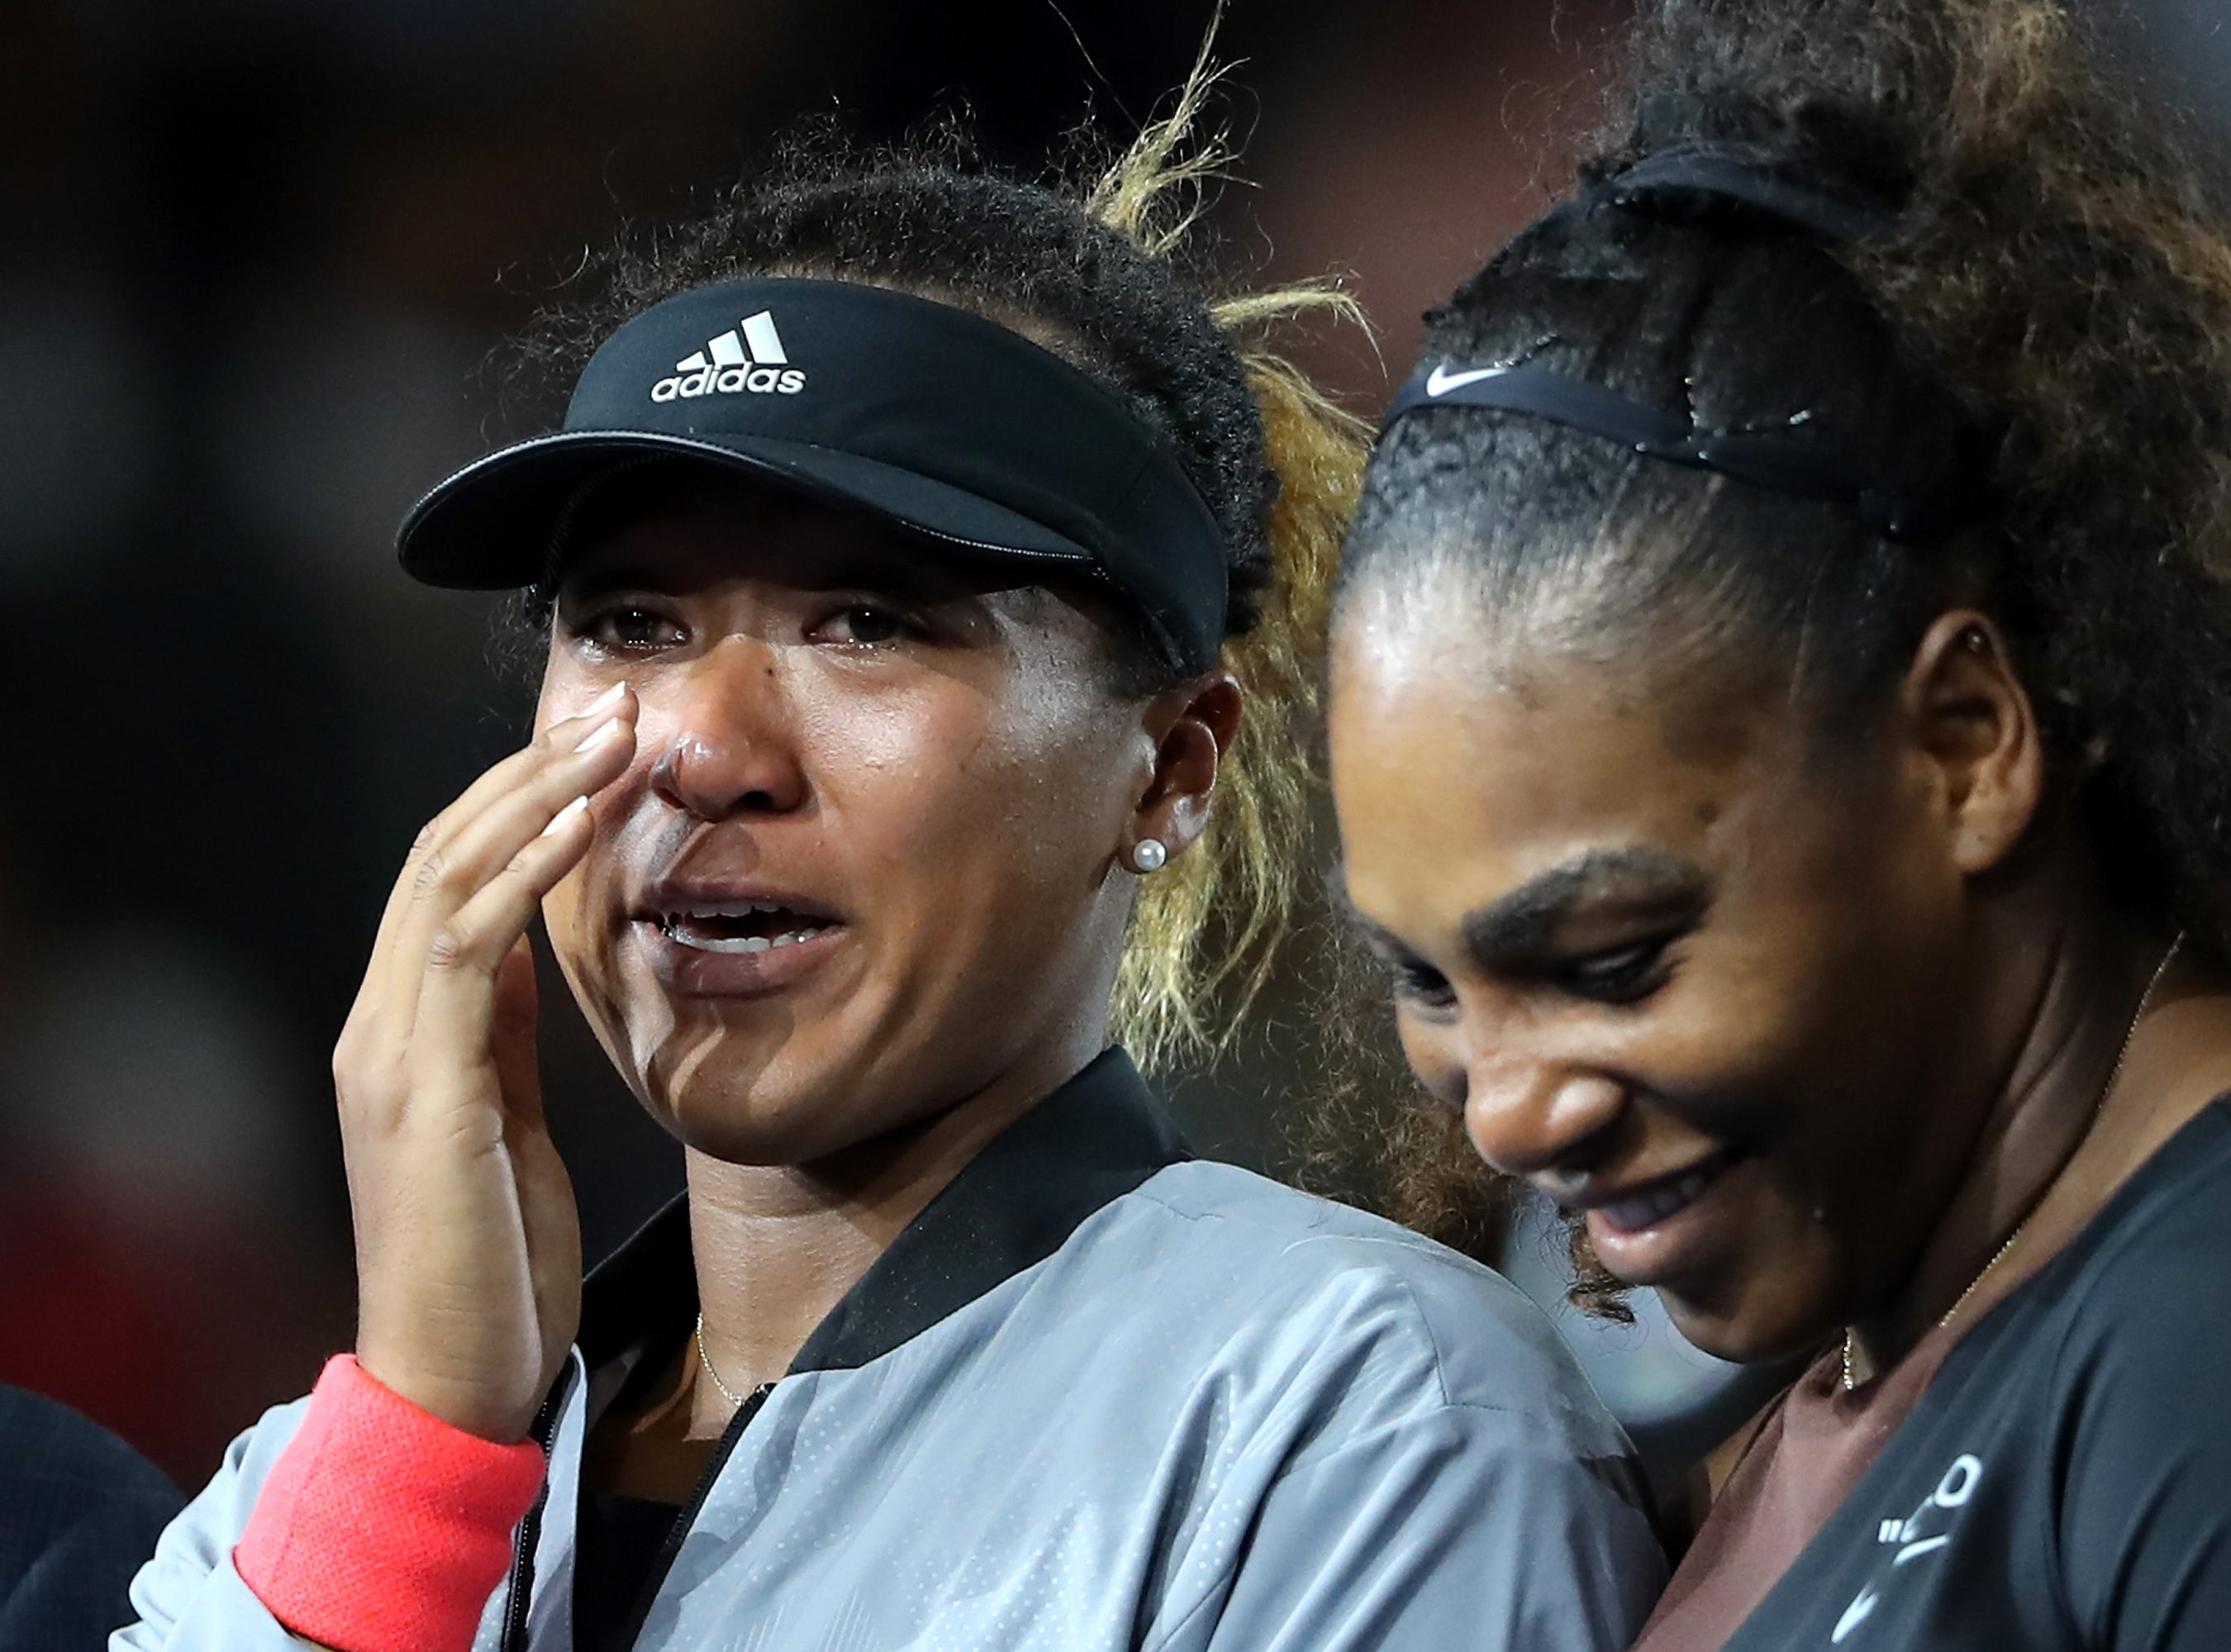 Naomi Osaka was in tears during the ceremony because the crowd was booing over the officiating controversy surrounding Serena Williams.